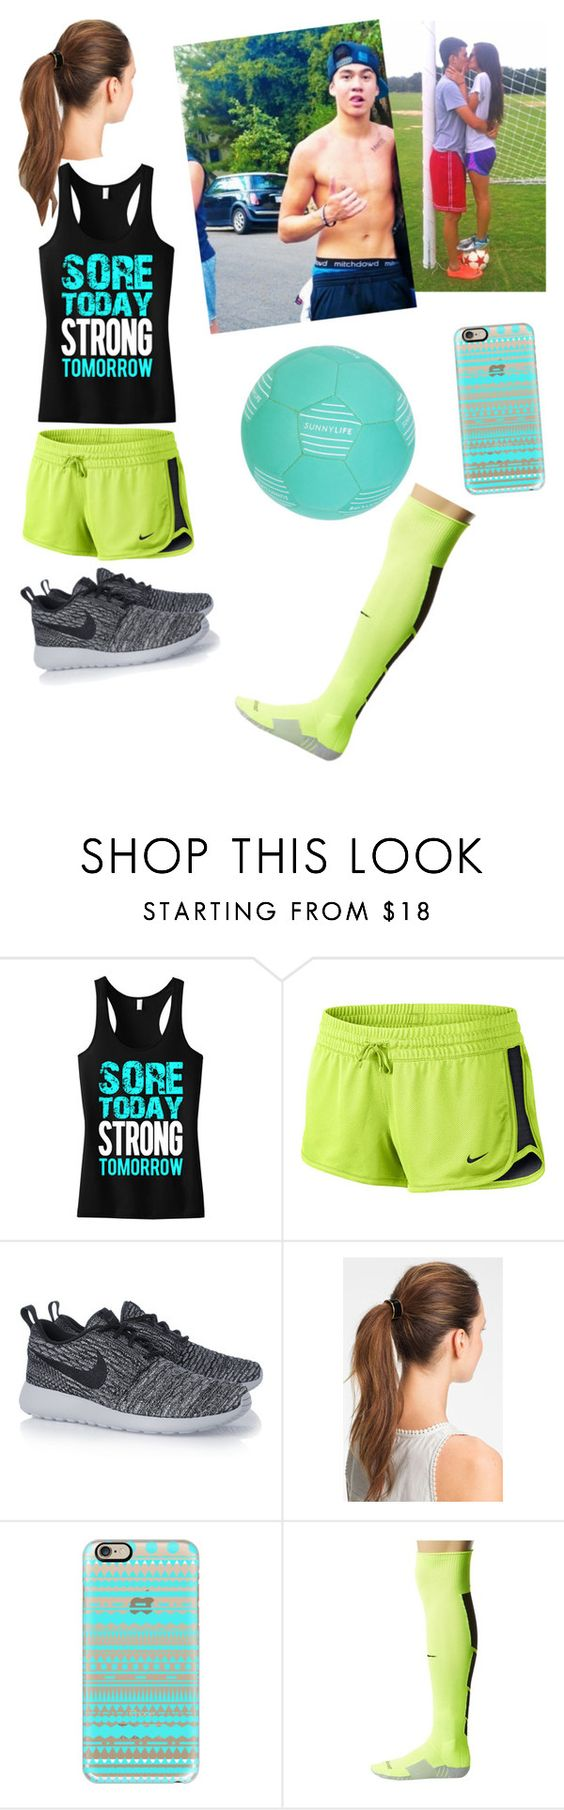 """Playing soccer with cal"" by macksimmons21 ❤ liked on Polyvore featuring beauty, NIKE, L. Erickson, Casetify and Sunnylife"